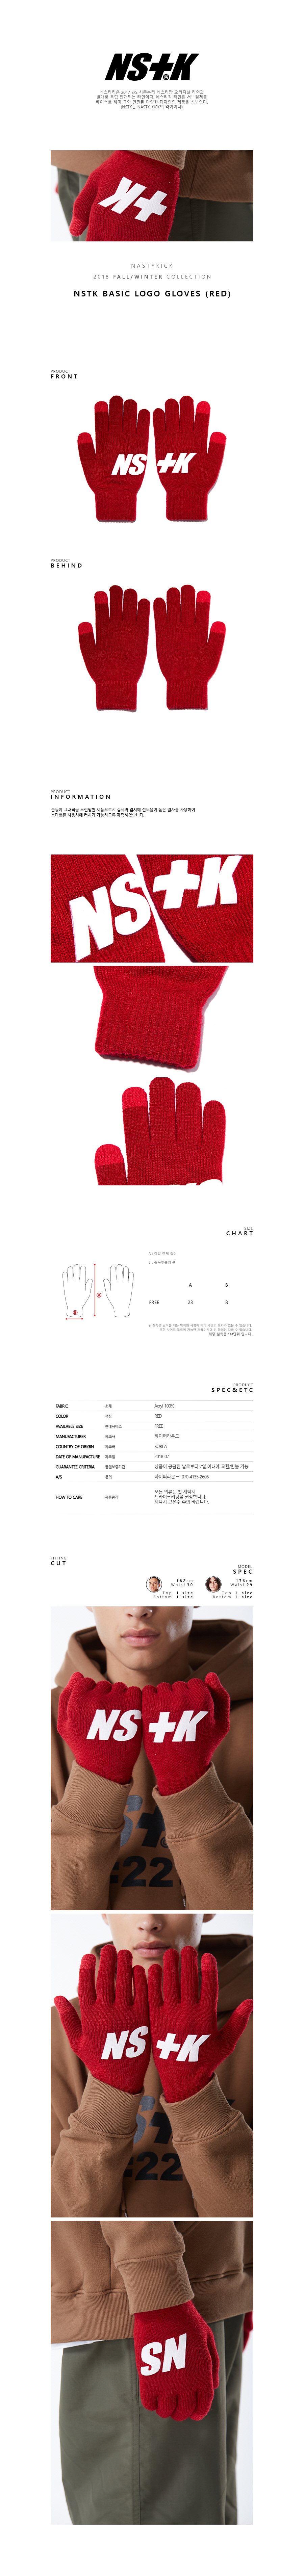 [NK] NSTK BASIC LOGO GLOVES (RED).jpg